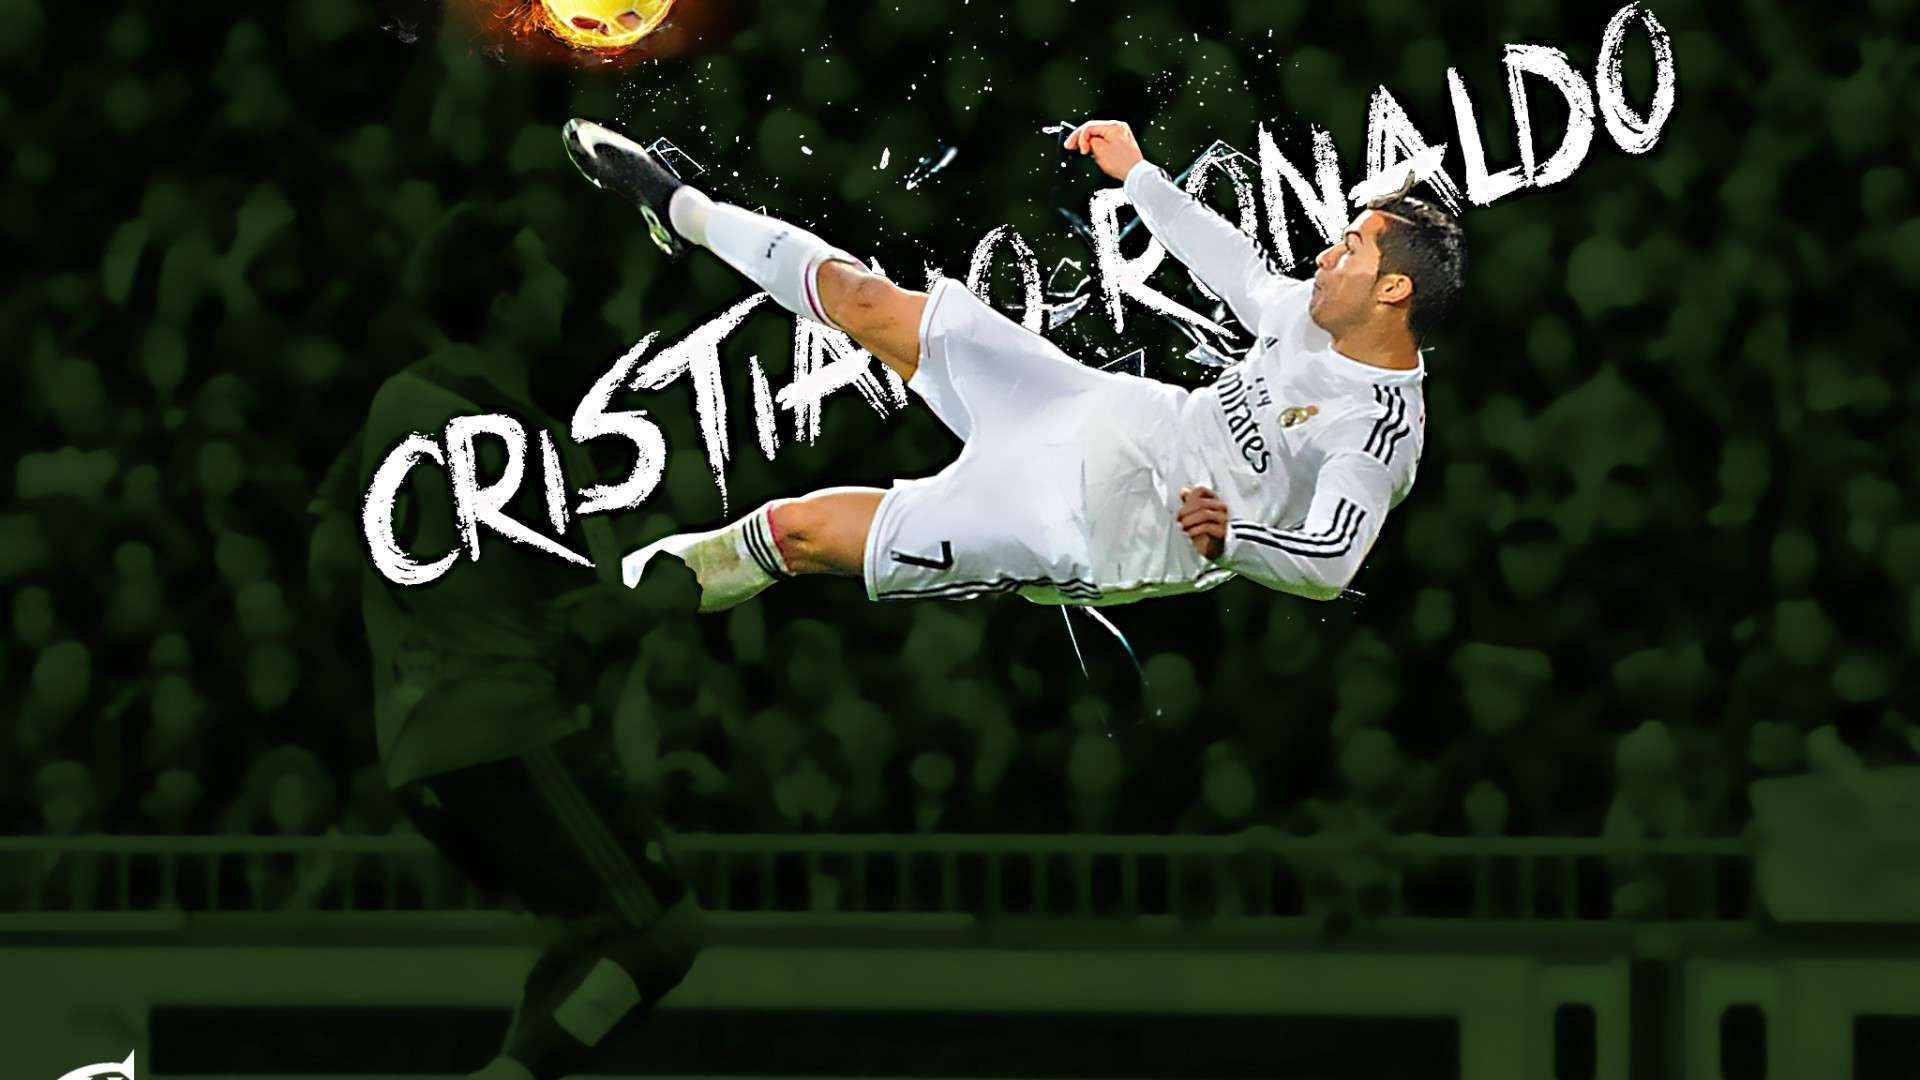 cr7 galaxy wallpapers for android | amazing wallpapers | pinterest